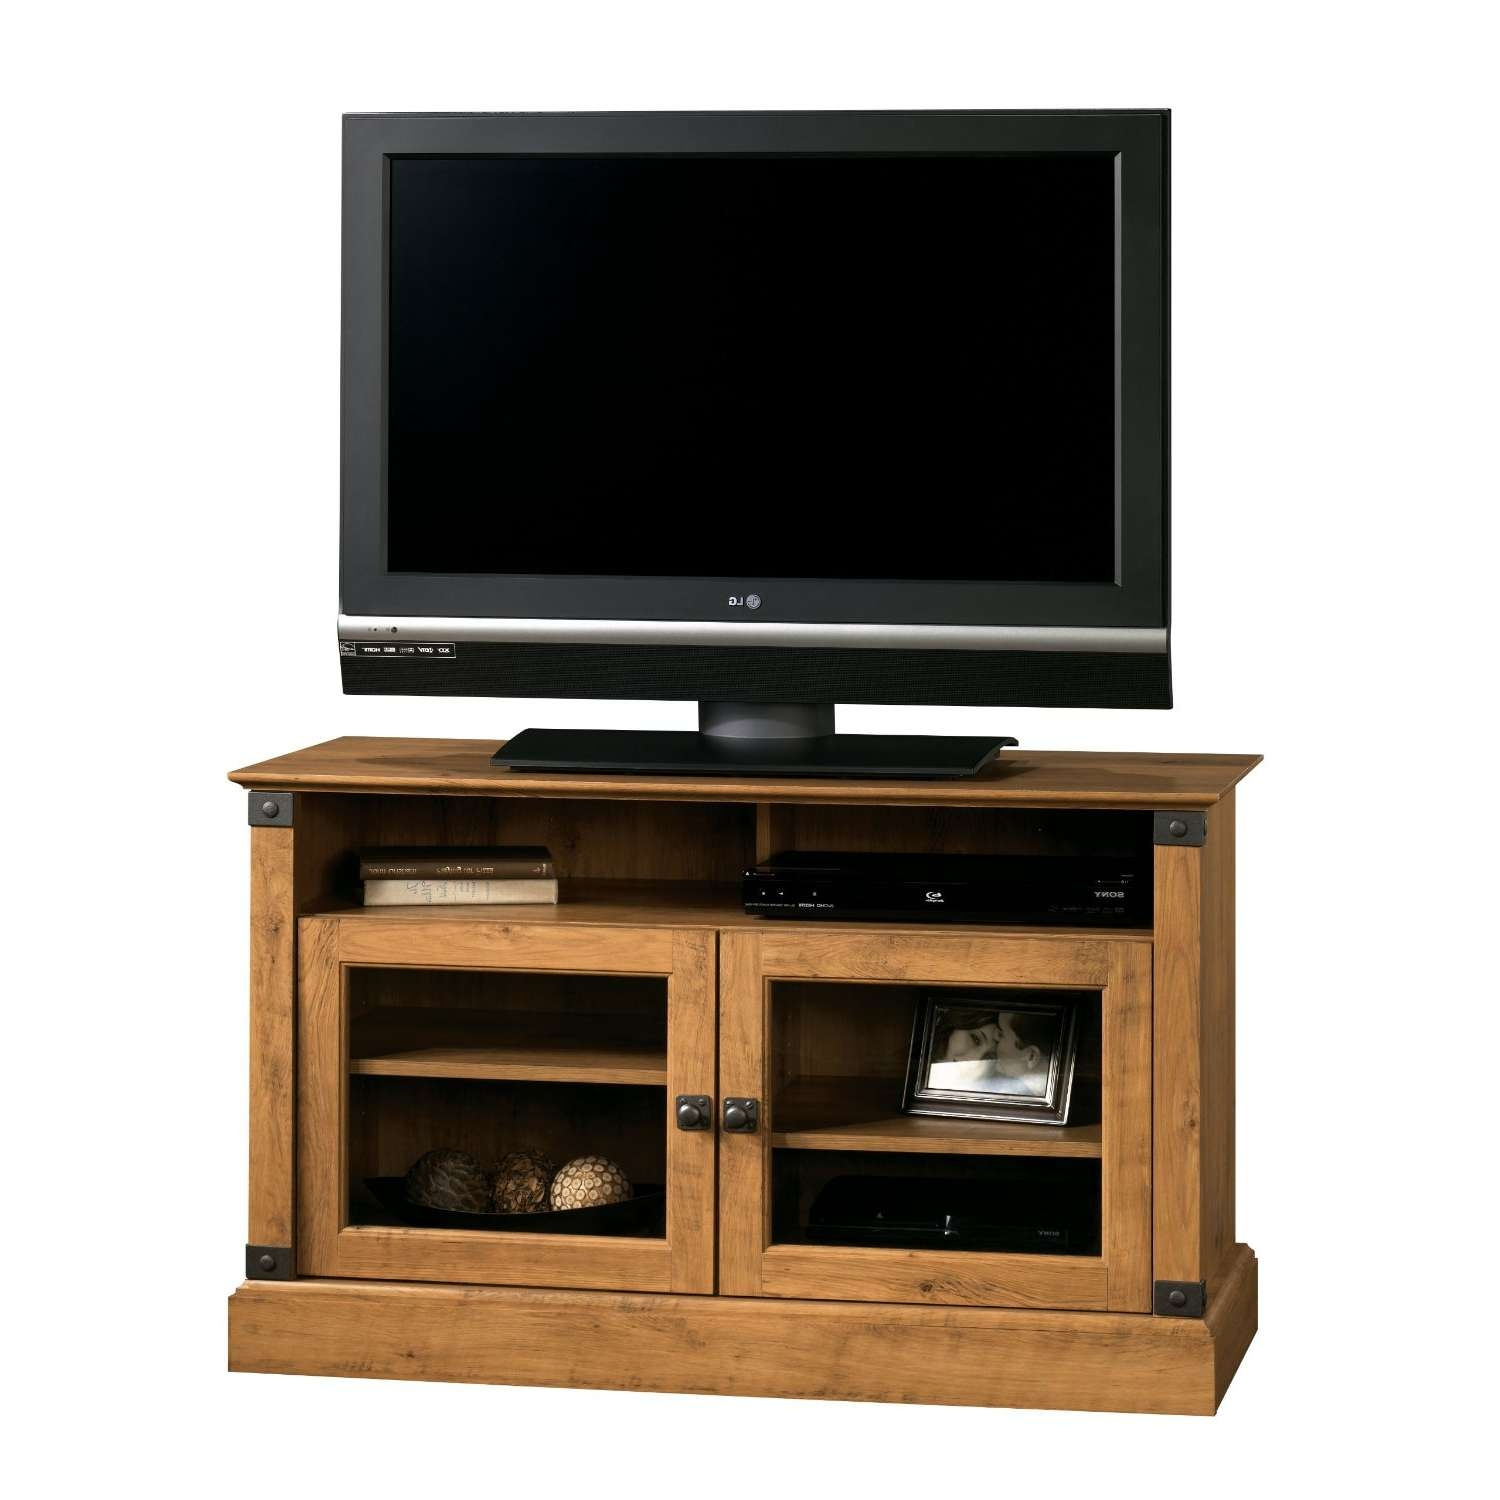 Furniture: Reclaimed Wood Tv Stand With Shelves And Drawers For Regarding Wooden Tv Cabinets (View 8 of 20)